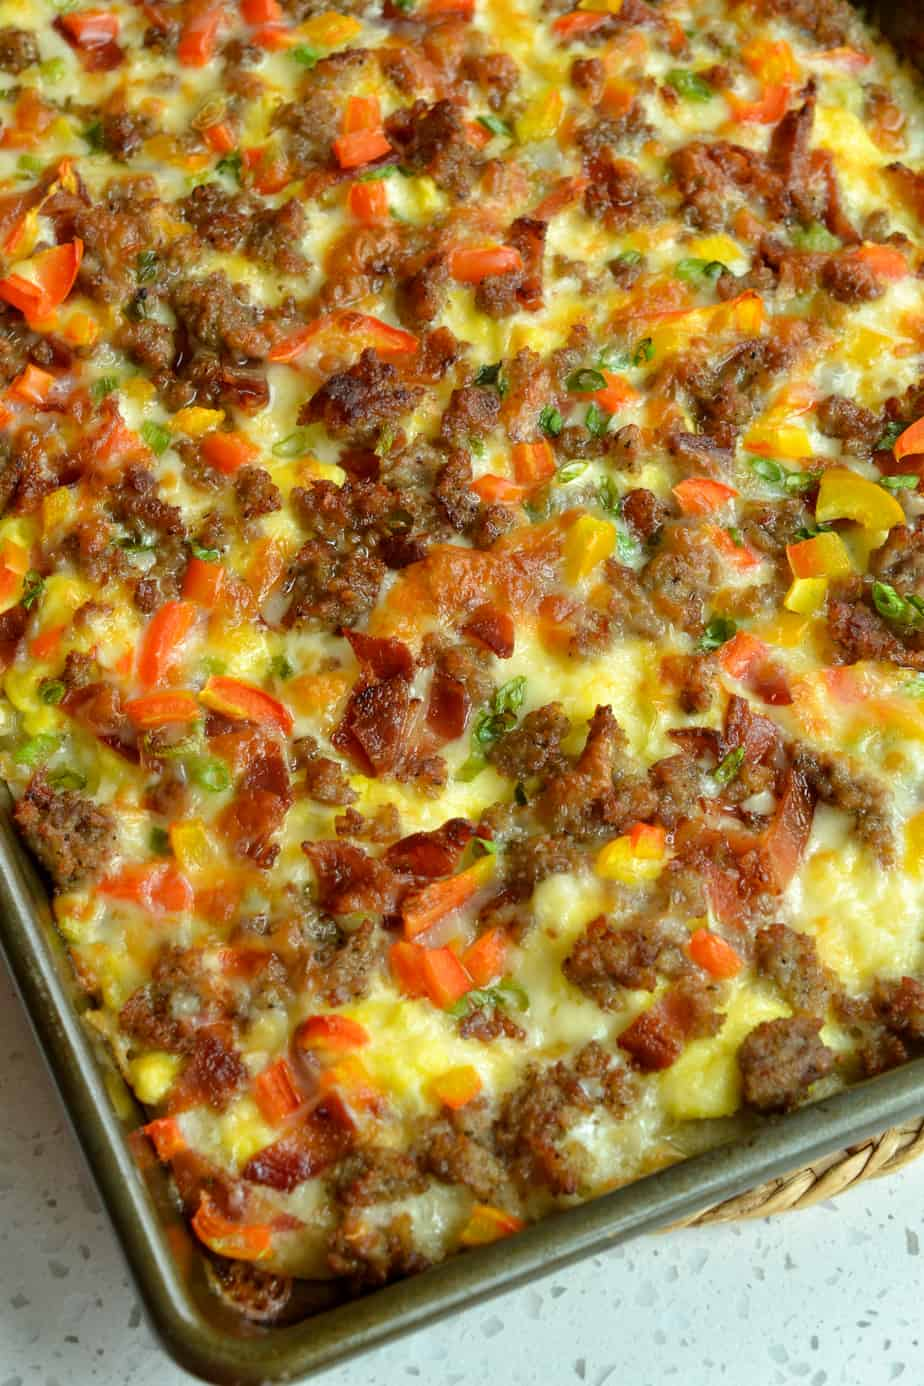 Breakfast Pizza is loaded with crispy bacon, browned pork sausage, sweet red bell pepper, scallions, scrambled eggs and eggs.